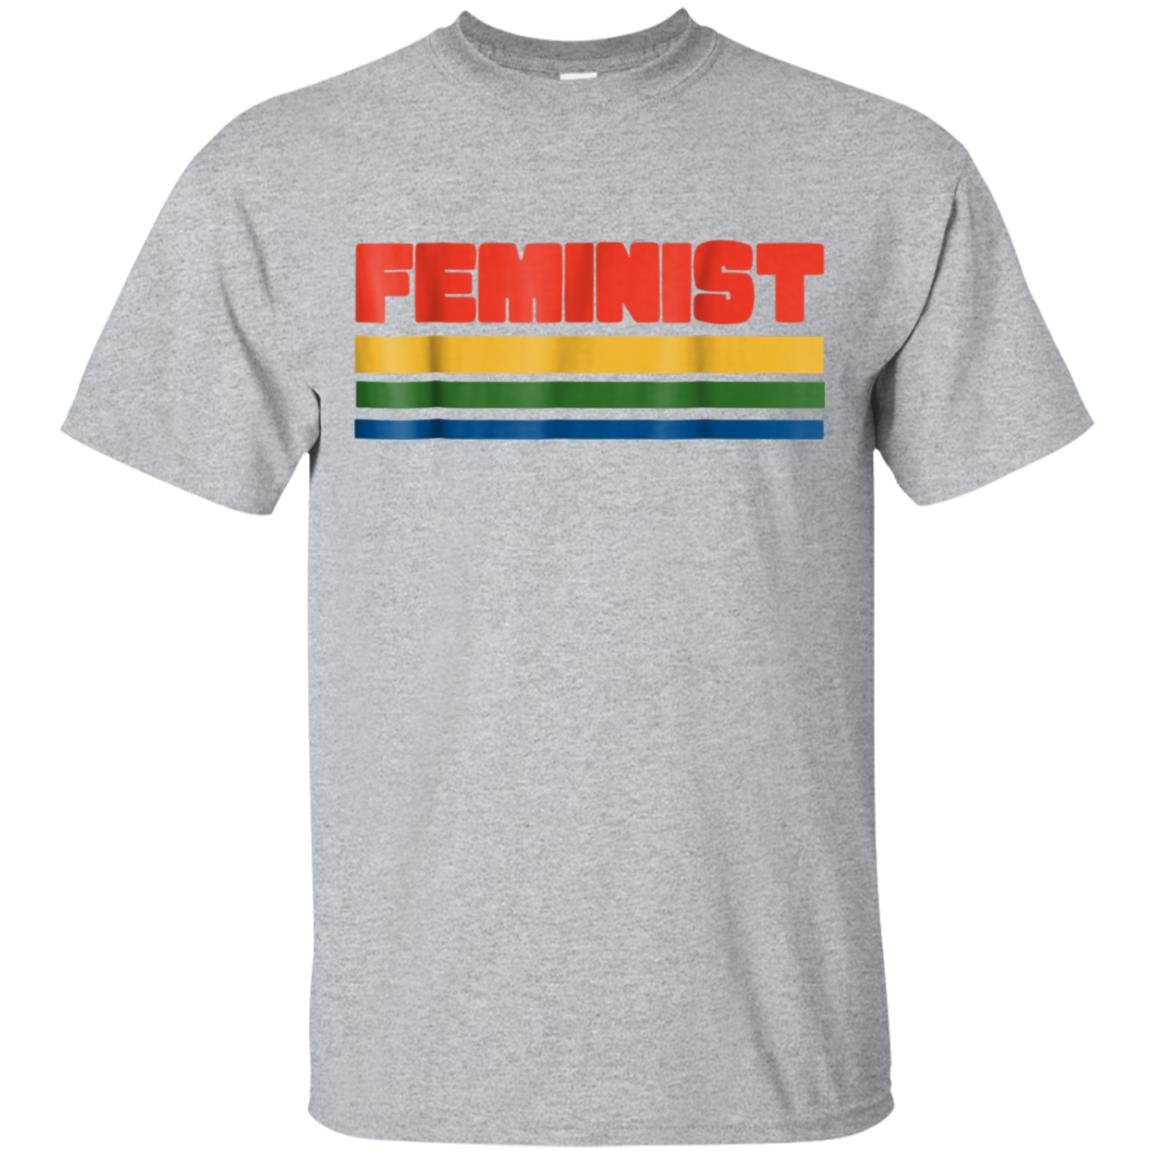 0797246a9 Awesome retro feminist t shirt 70s style feminism tee shirts ...